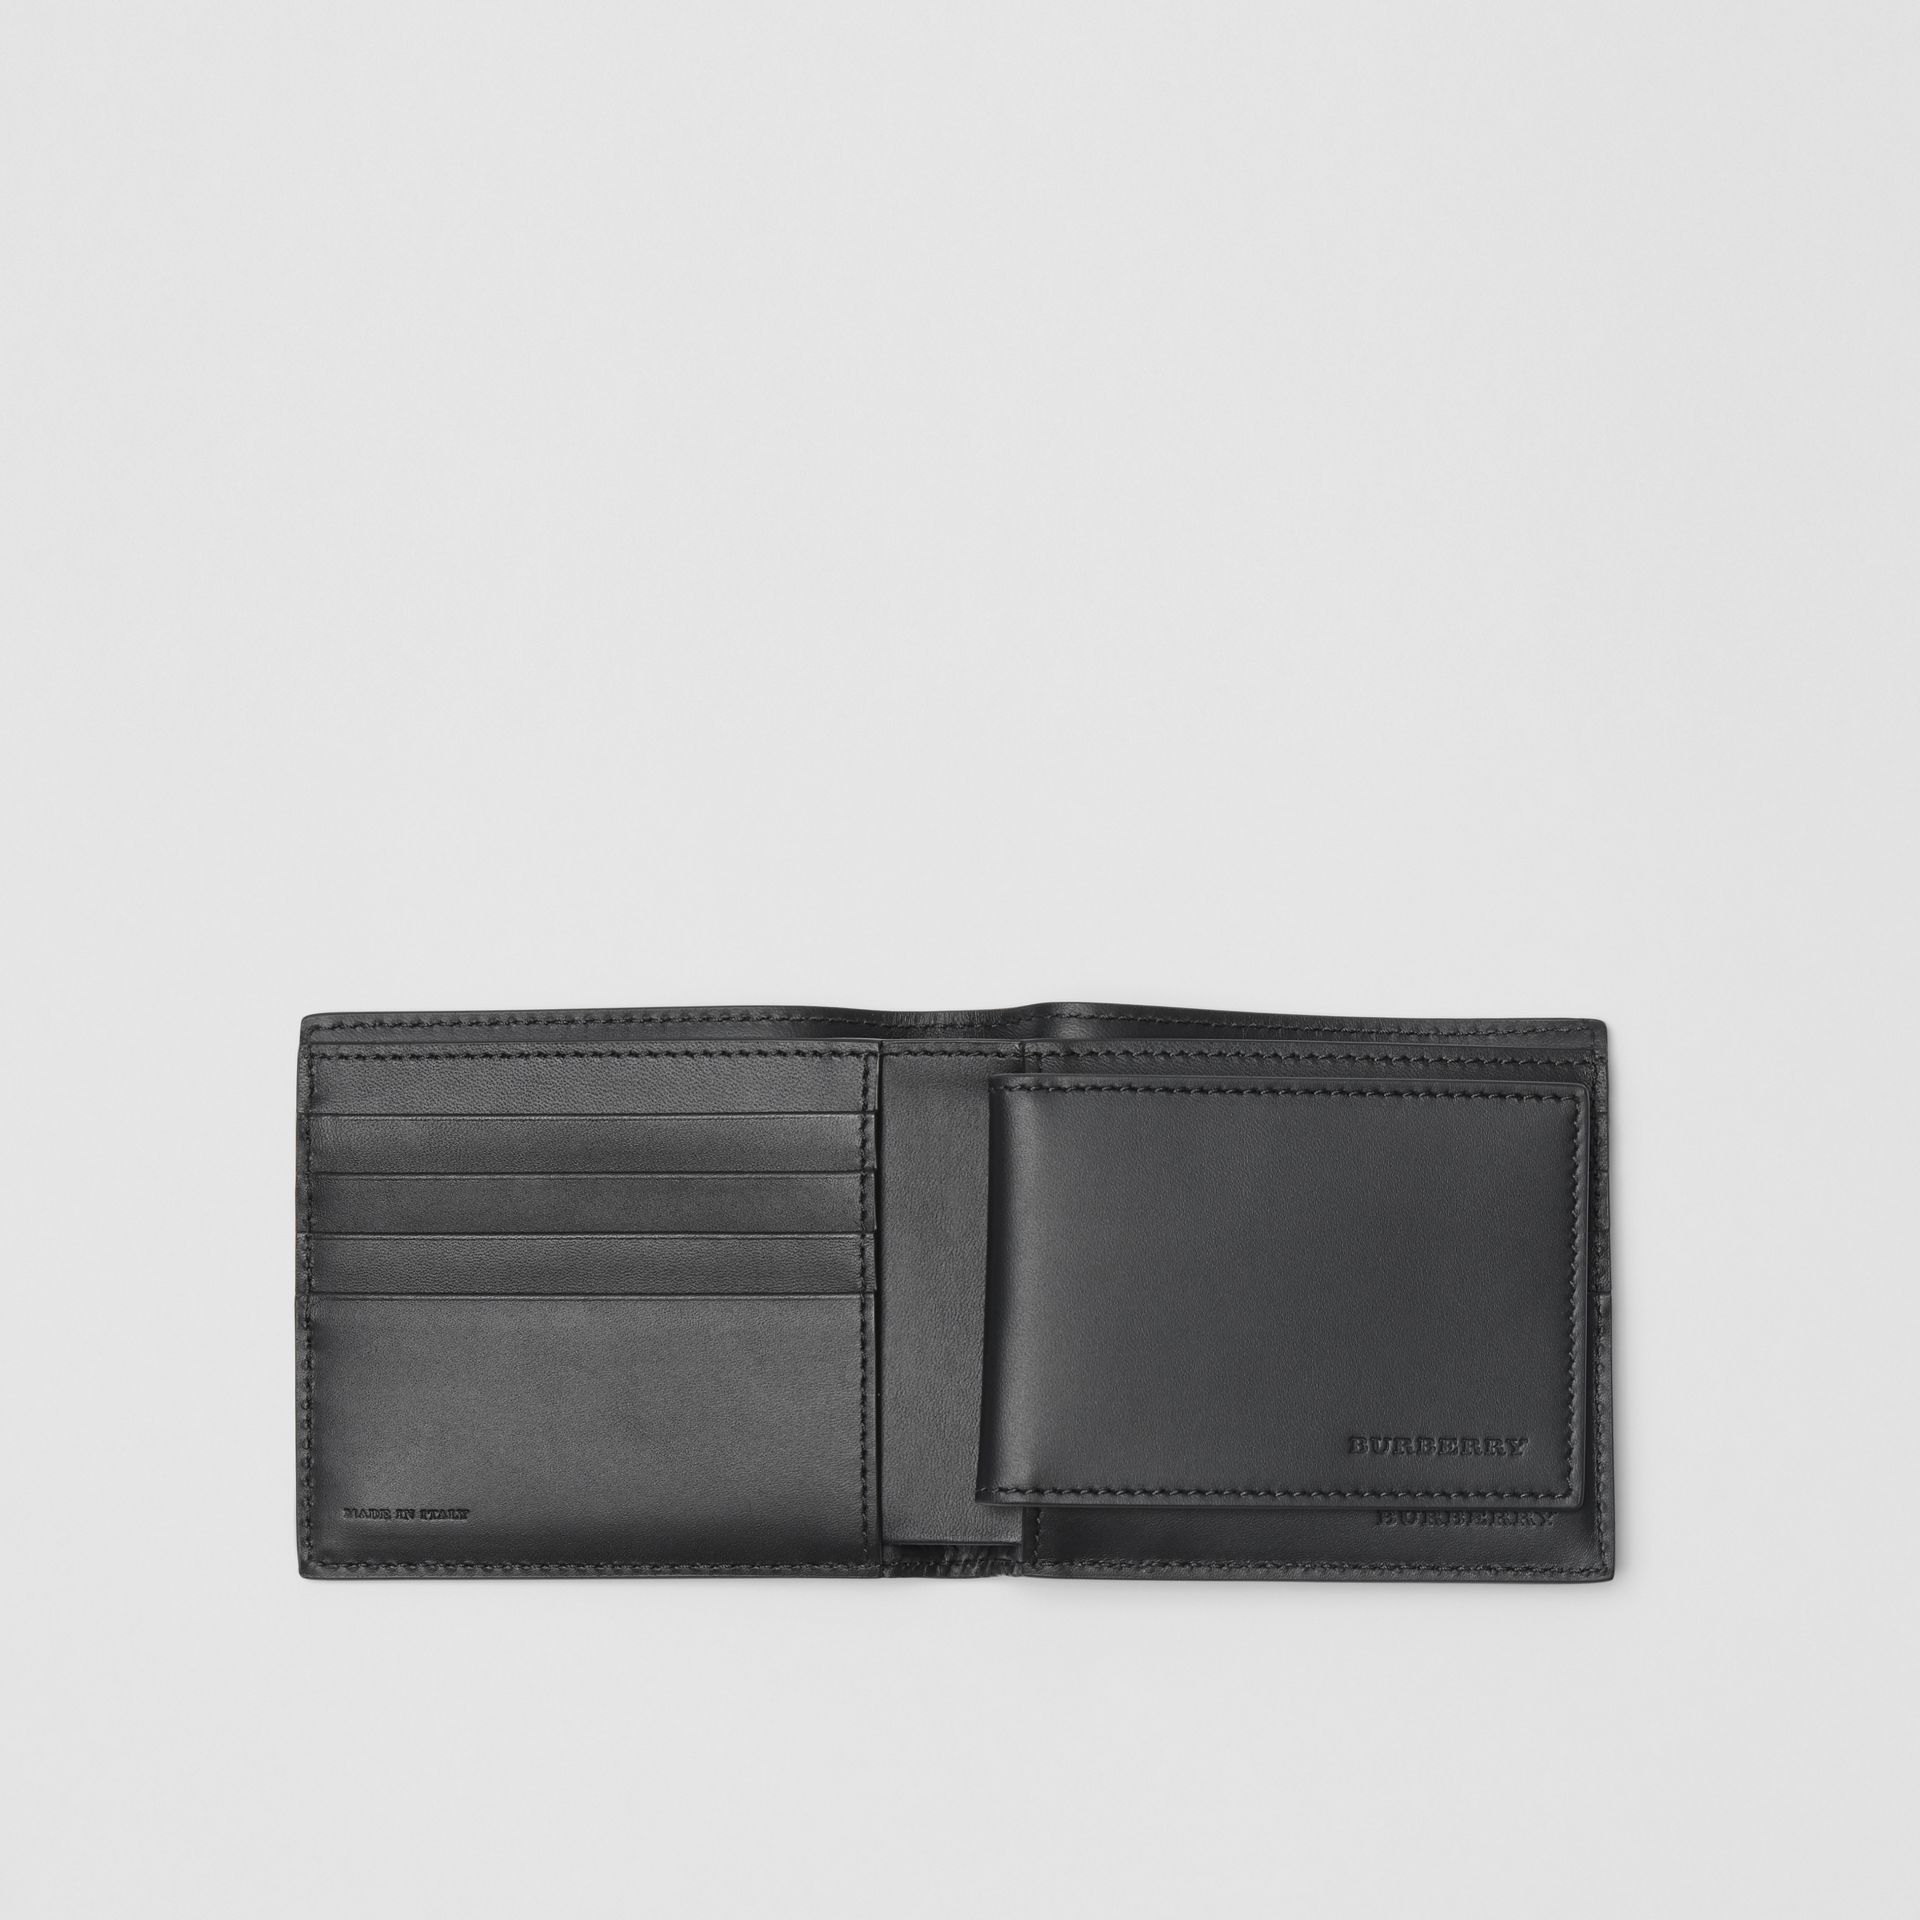 EKD London Leather Bifold Wallet with ID Card Case in Black - Men | Burberry United Kingdom - gallery image 3